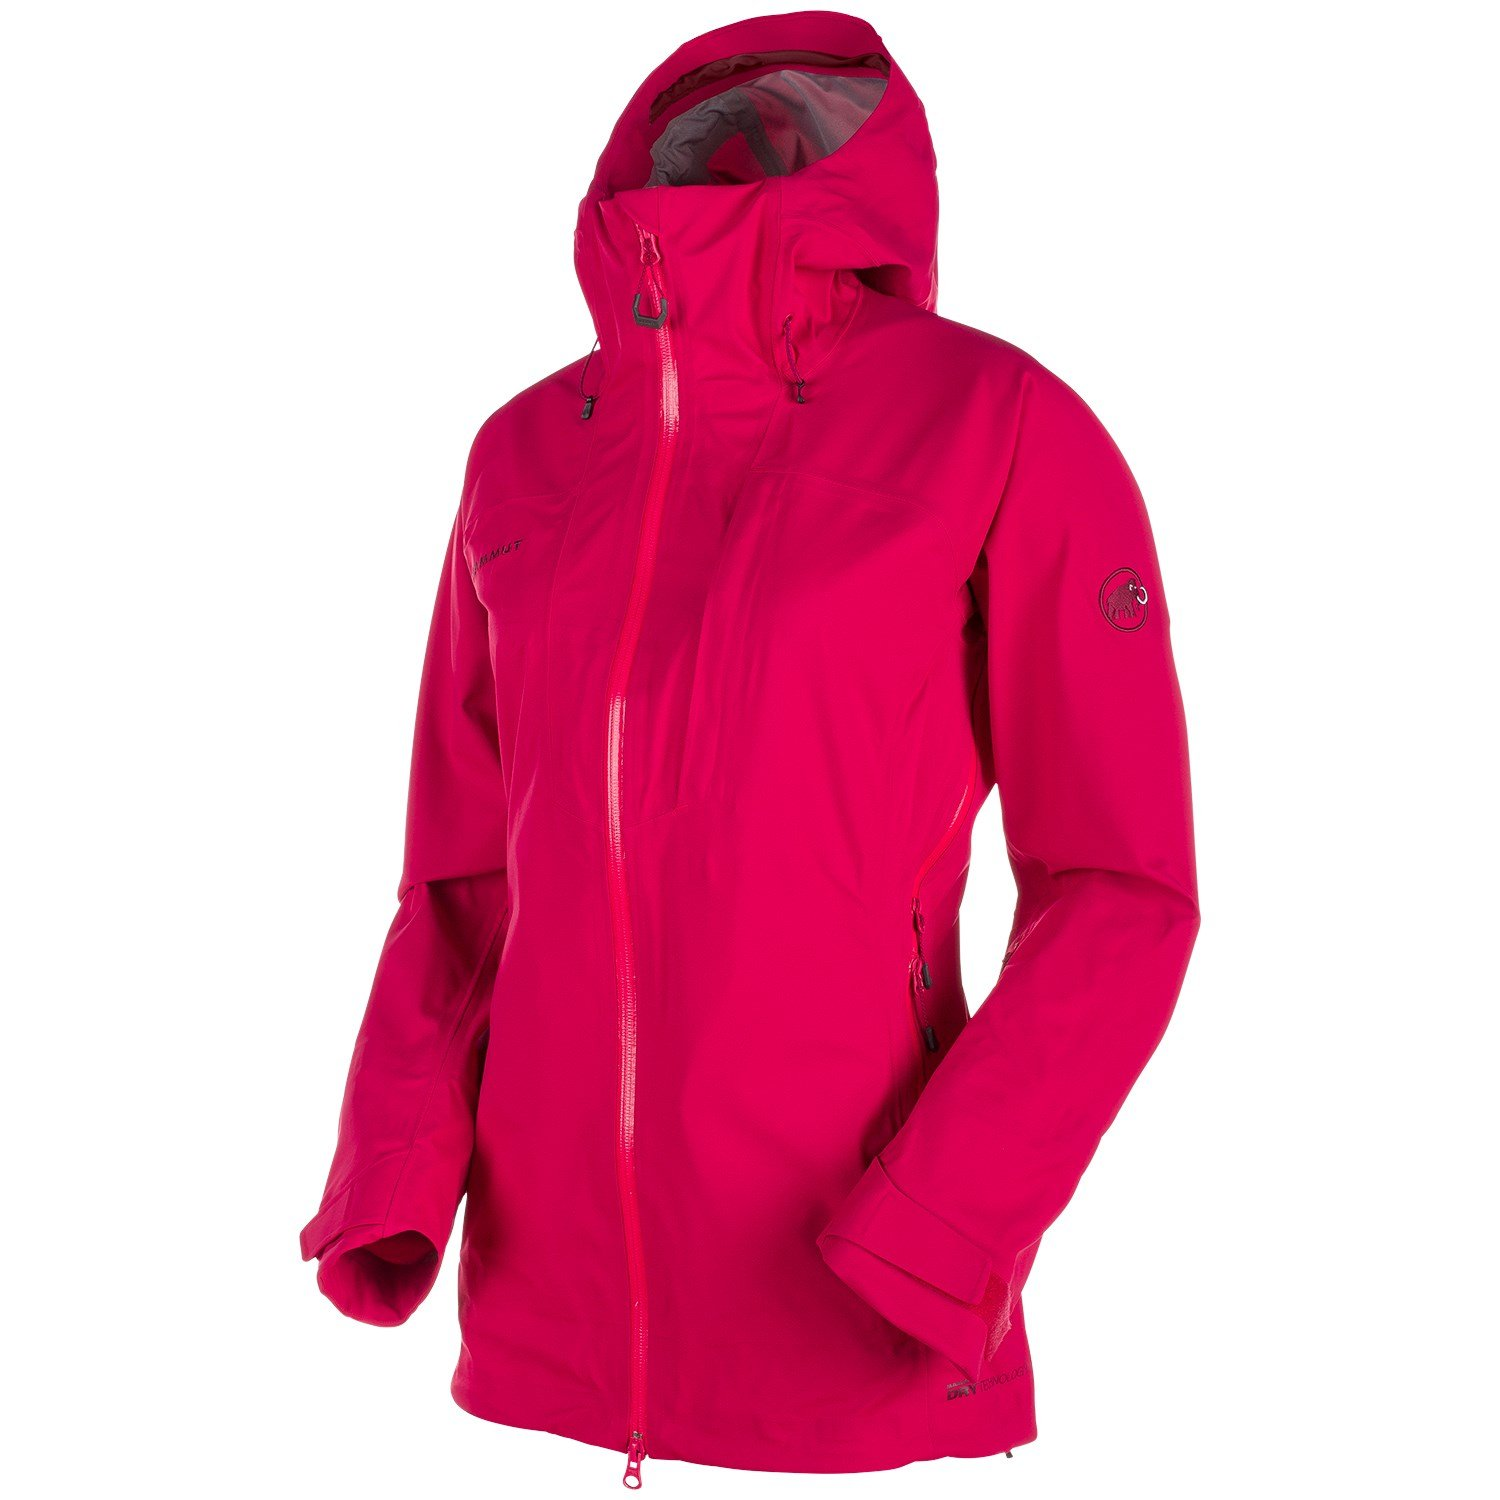 special section wholesale online sale online Mammut Luina Tour HS Hooded Jacket - Women's | evo